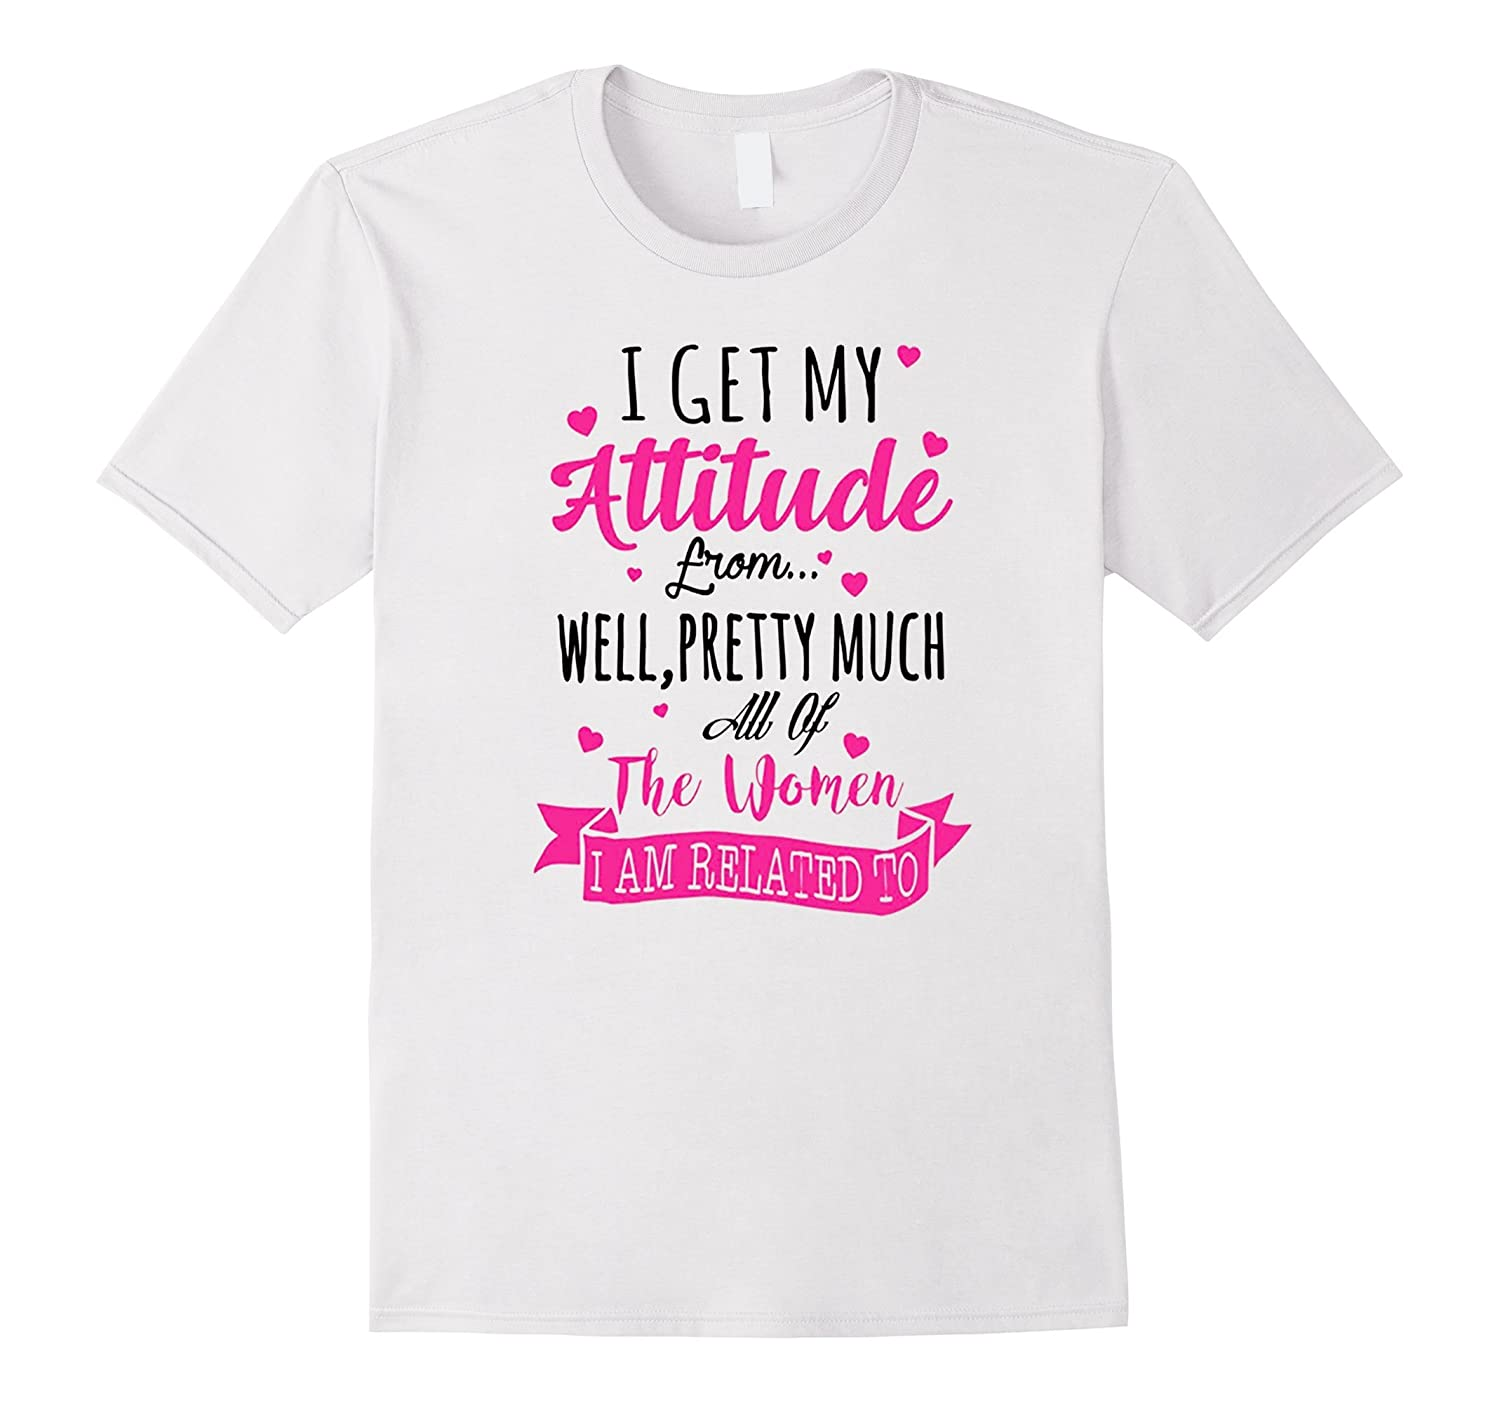 I get my attitudes from all the womenss tshirt-Art